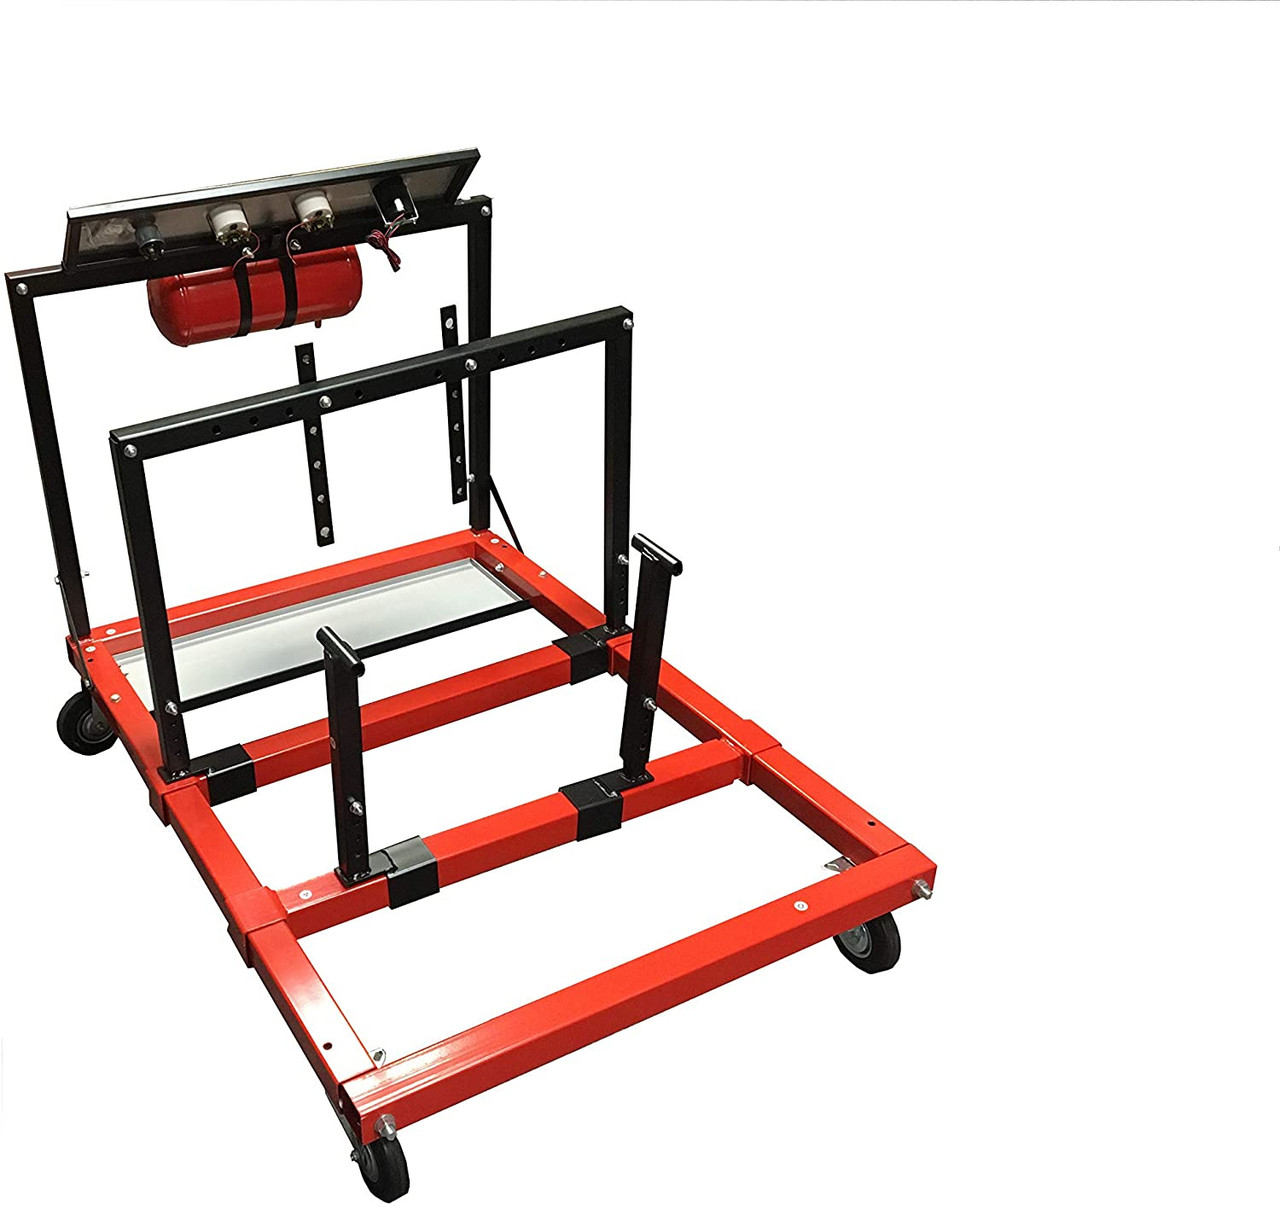 Larin METS-1 BUYERS SALTDOGG Mobile Engine Testing Station stand BACK